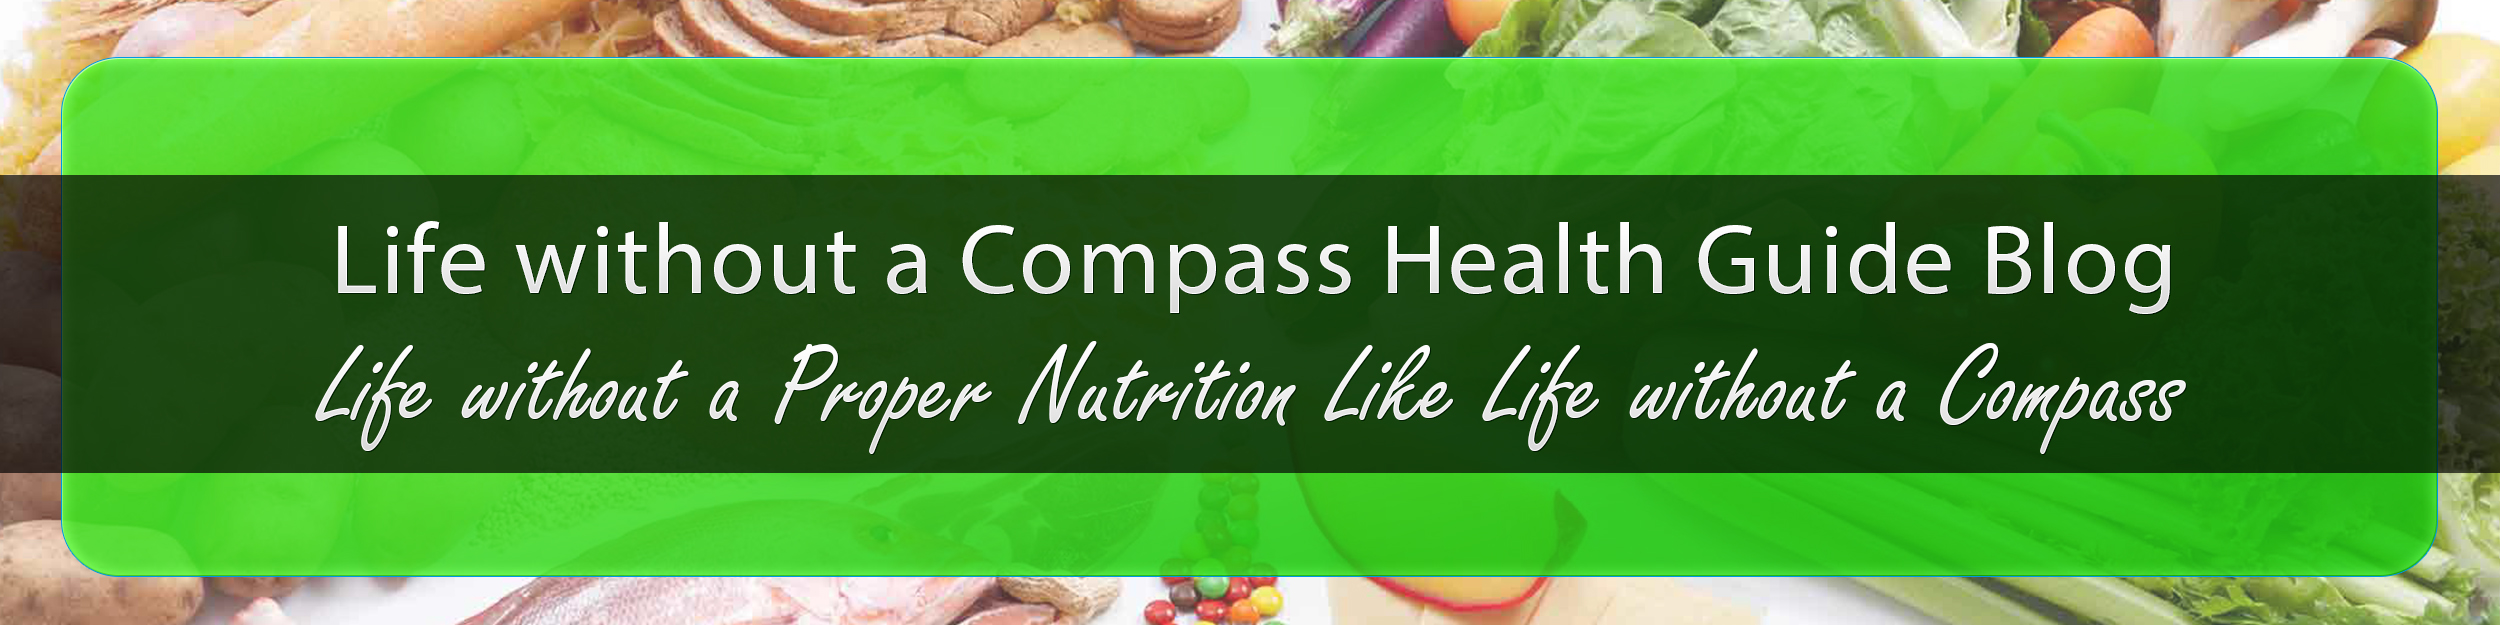 Life without a Compass Health Guide Blog